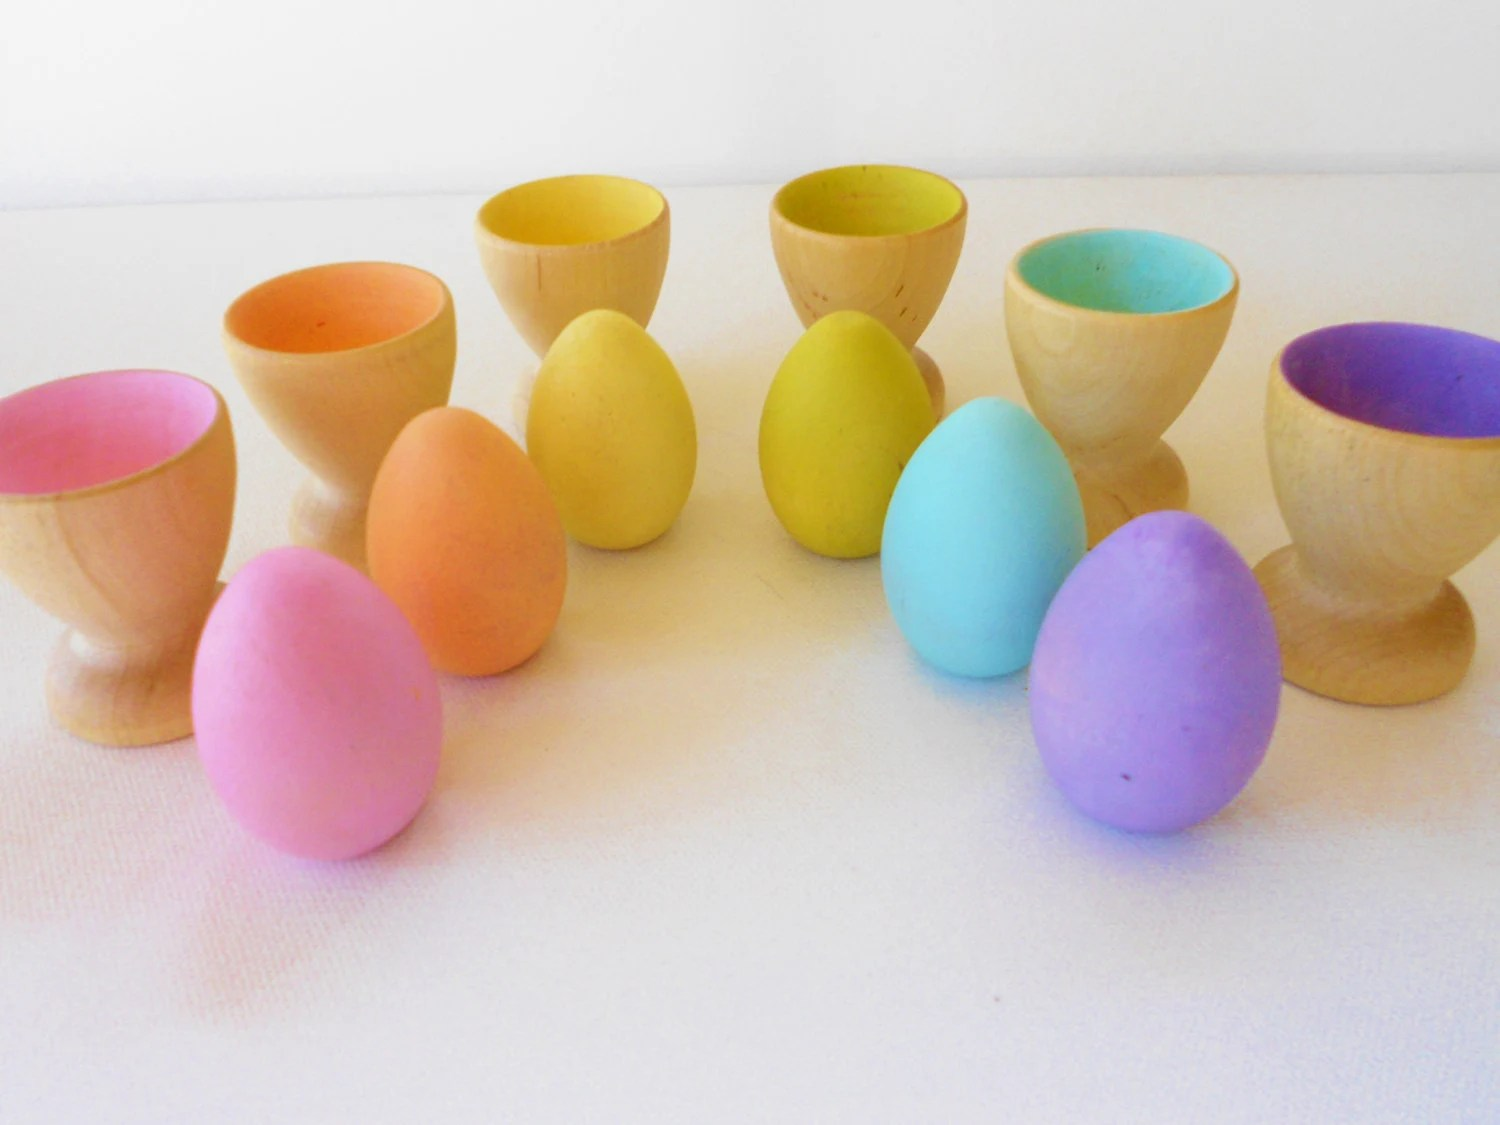 Wood play eggs and cups montessori color matching game - laughingcrickets